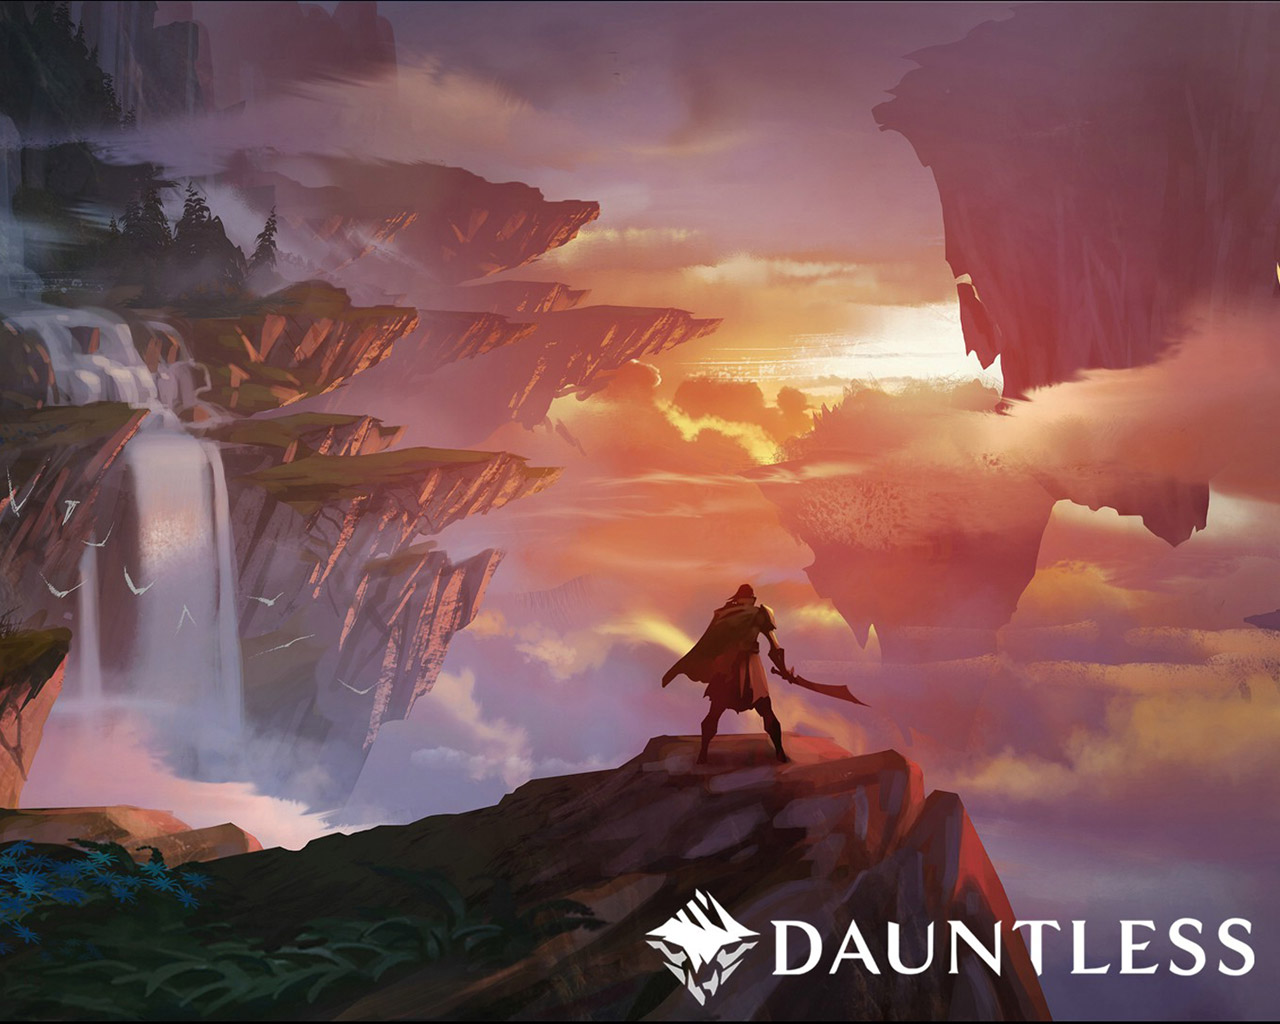 Dauntless Wallpaper in 1280x1024